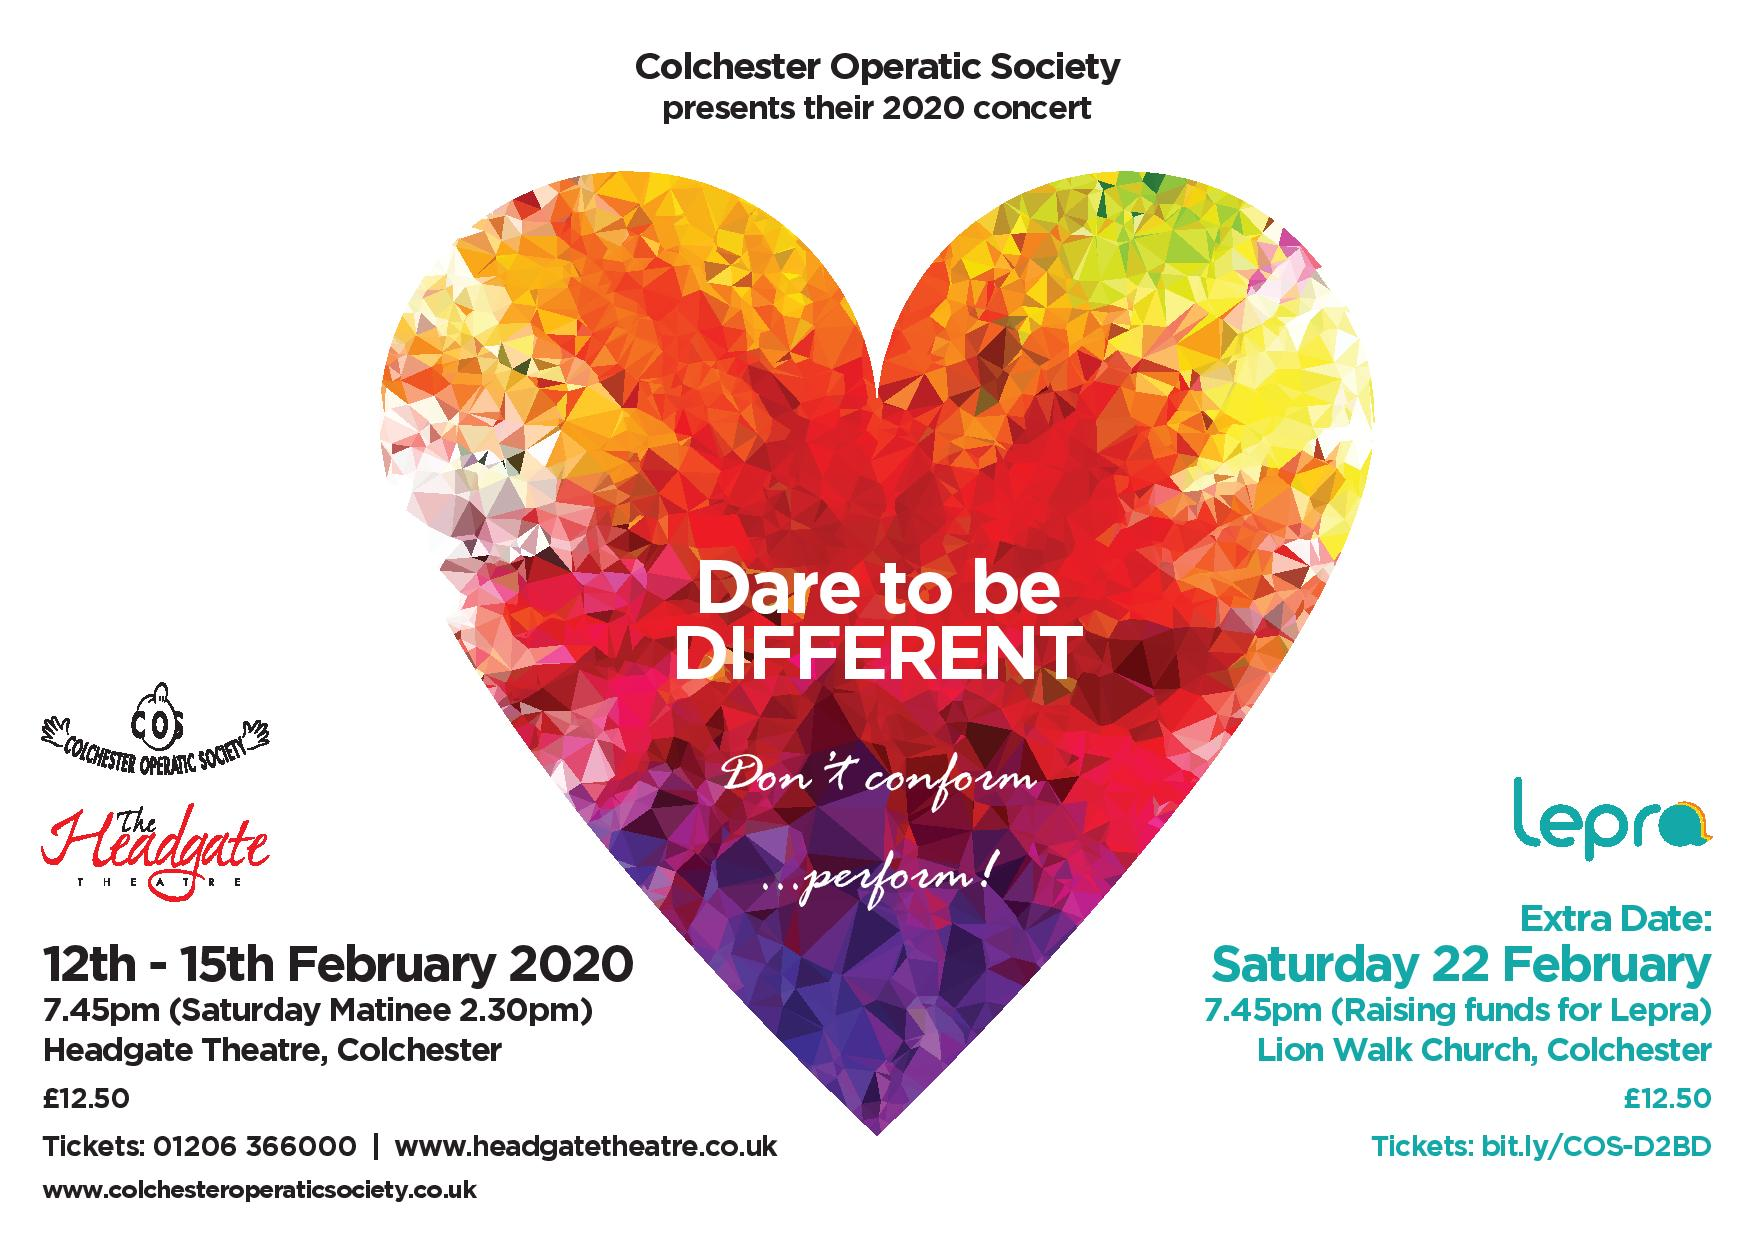 Dare to be Differet Concert artwork